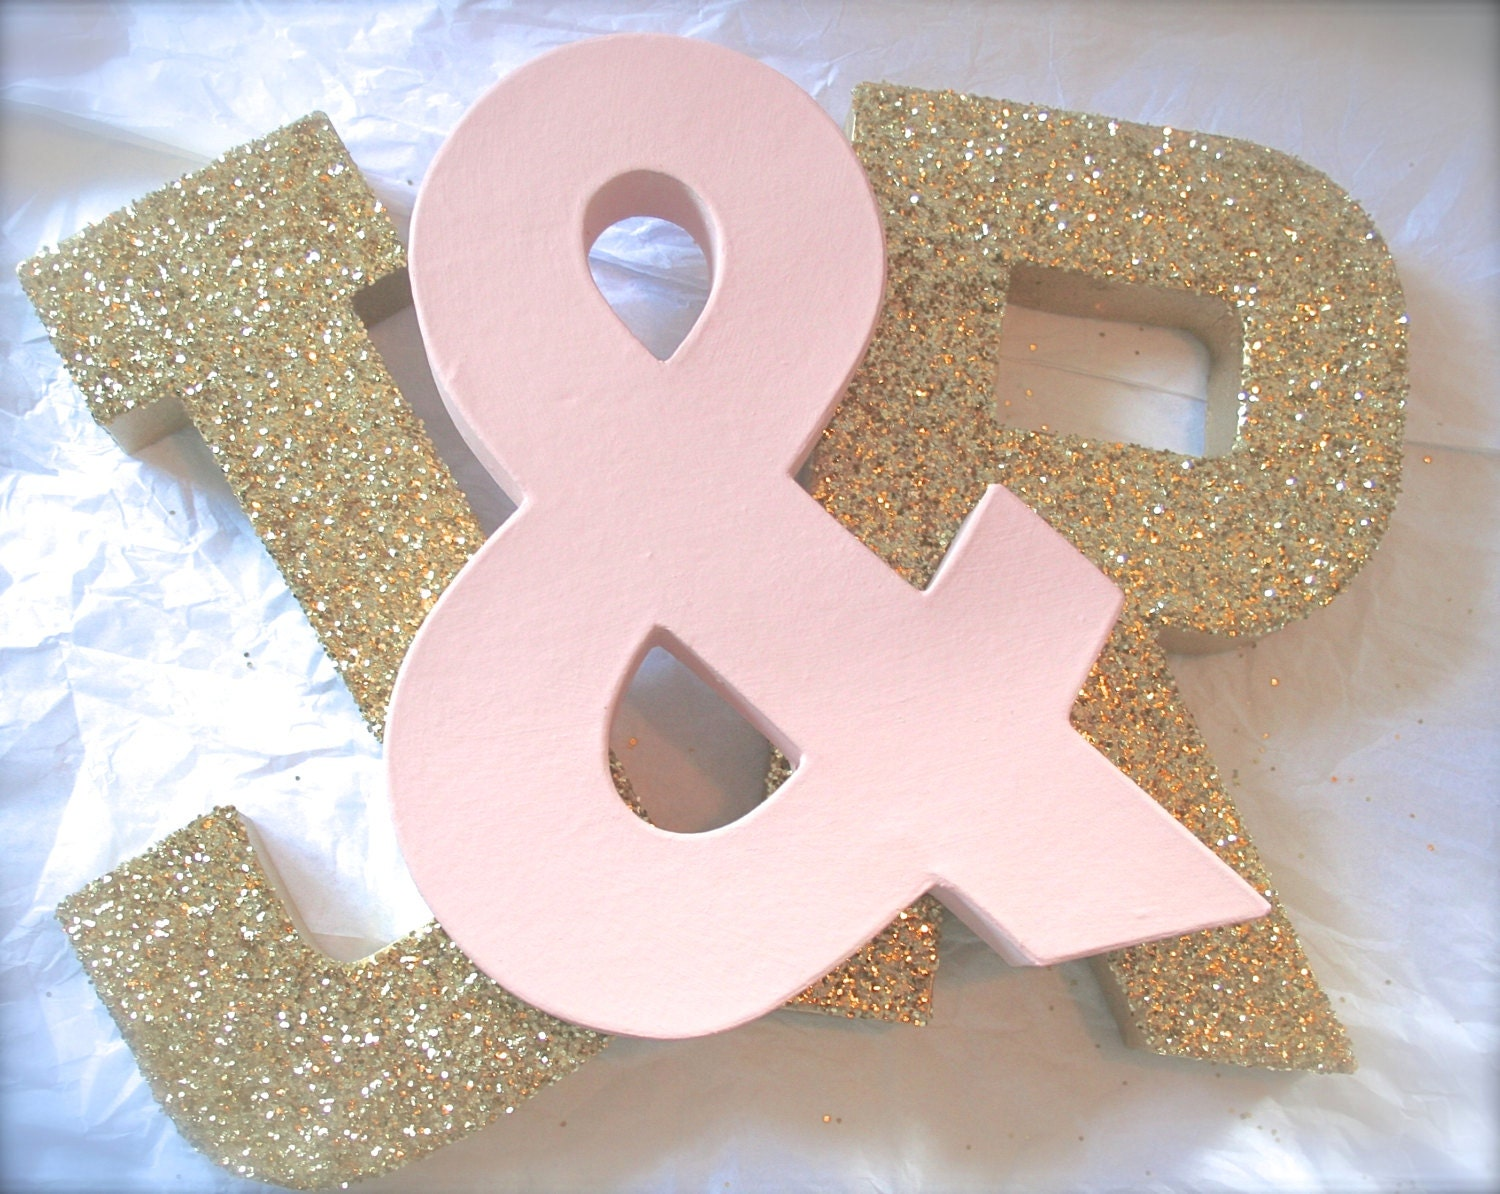 glittered letters wedding decor and home decor self standing home decor letters door hangers trend home design and decor